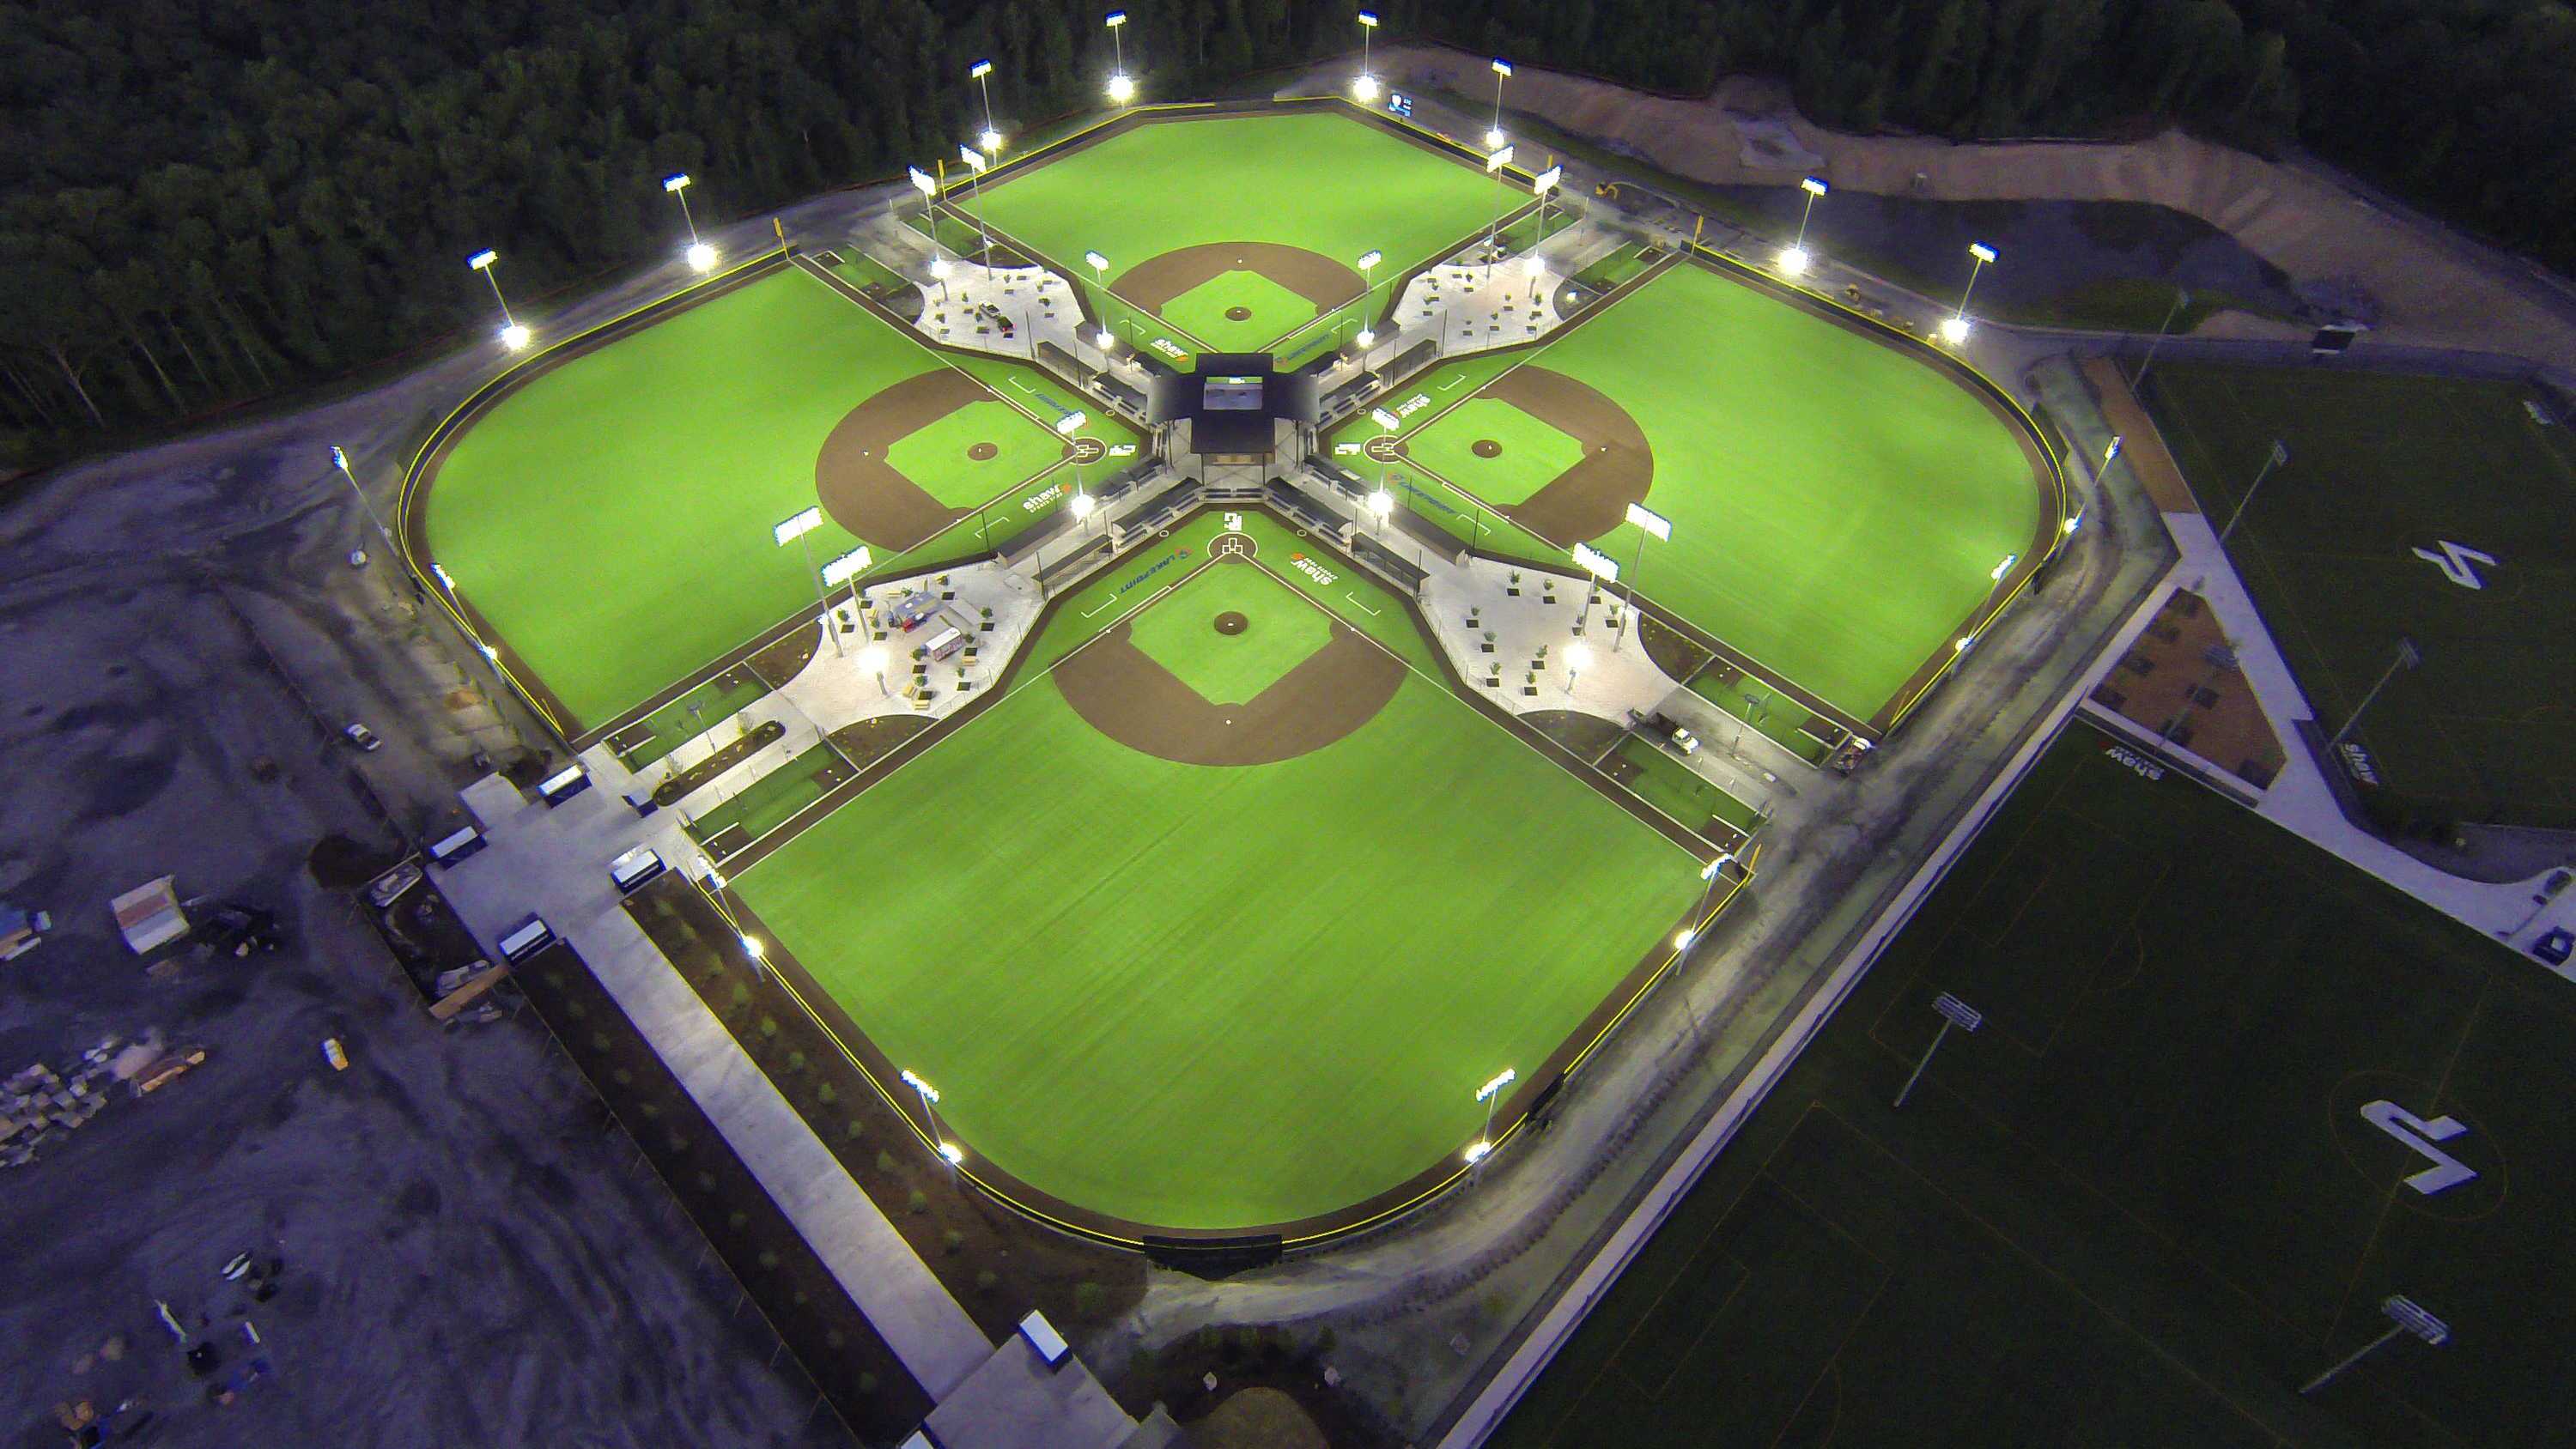 SHAW SPORTS TURF FIELDS EXCEED EXPECTATIONS AT LAKEPOINT'S PERFECT